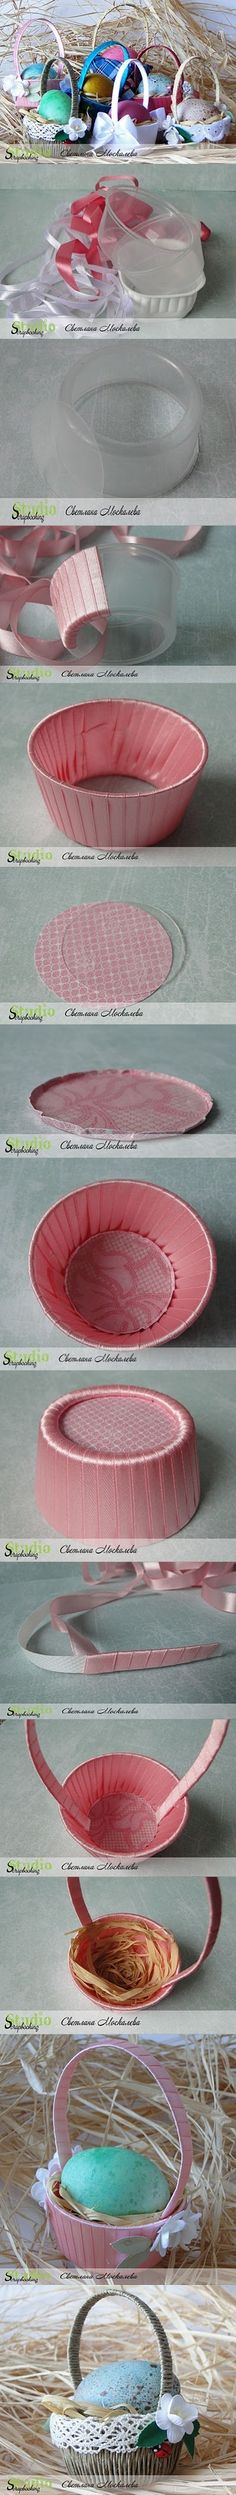 DIY Easter Basket with Disposable Plastic Bowl | www.FabArtDIY.com LIKE Us on Facebook ==> https://www.facebook.com/FabArtDIY